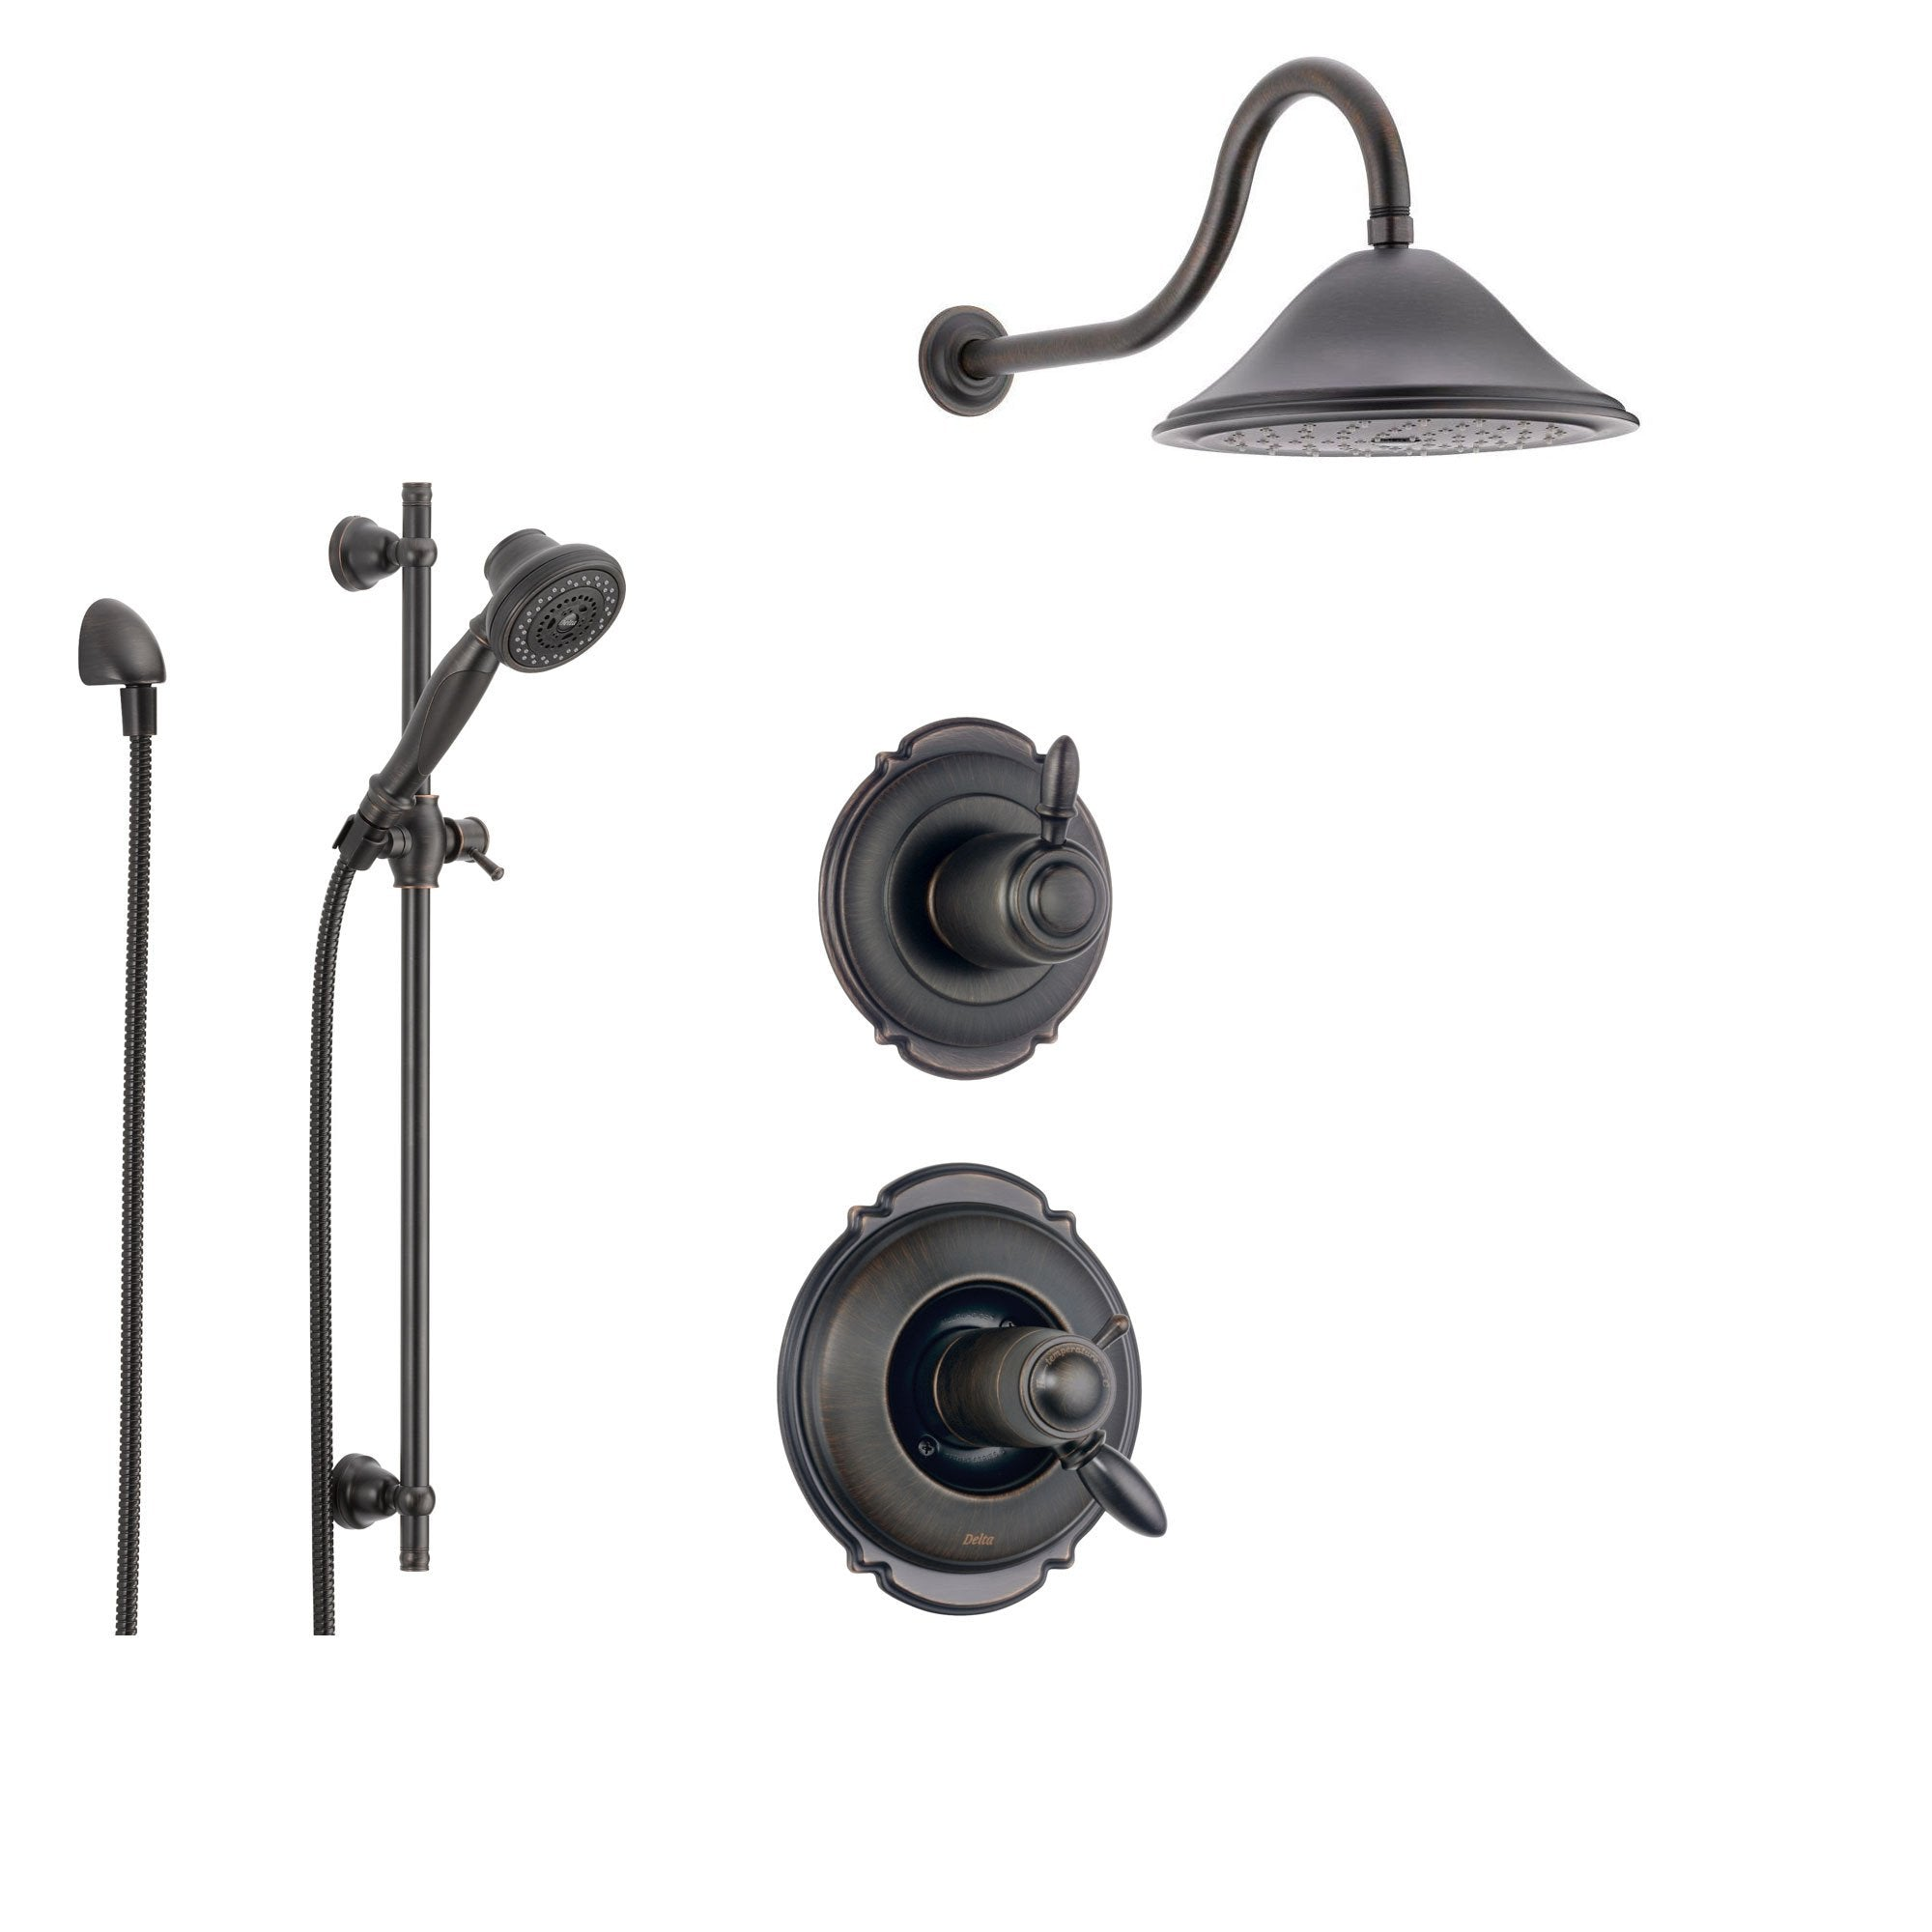 Delta Victorian Venetian Bronze Shower System with Thermostatic Shower Handle, 3-setting Diverter, Large Rain Showerhead, and Handheld Shower SS17T5582RB